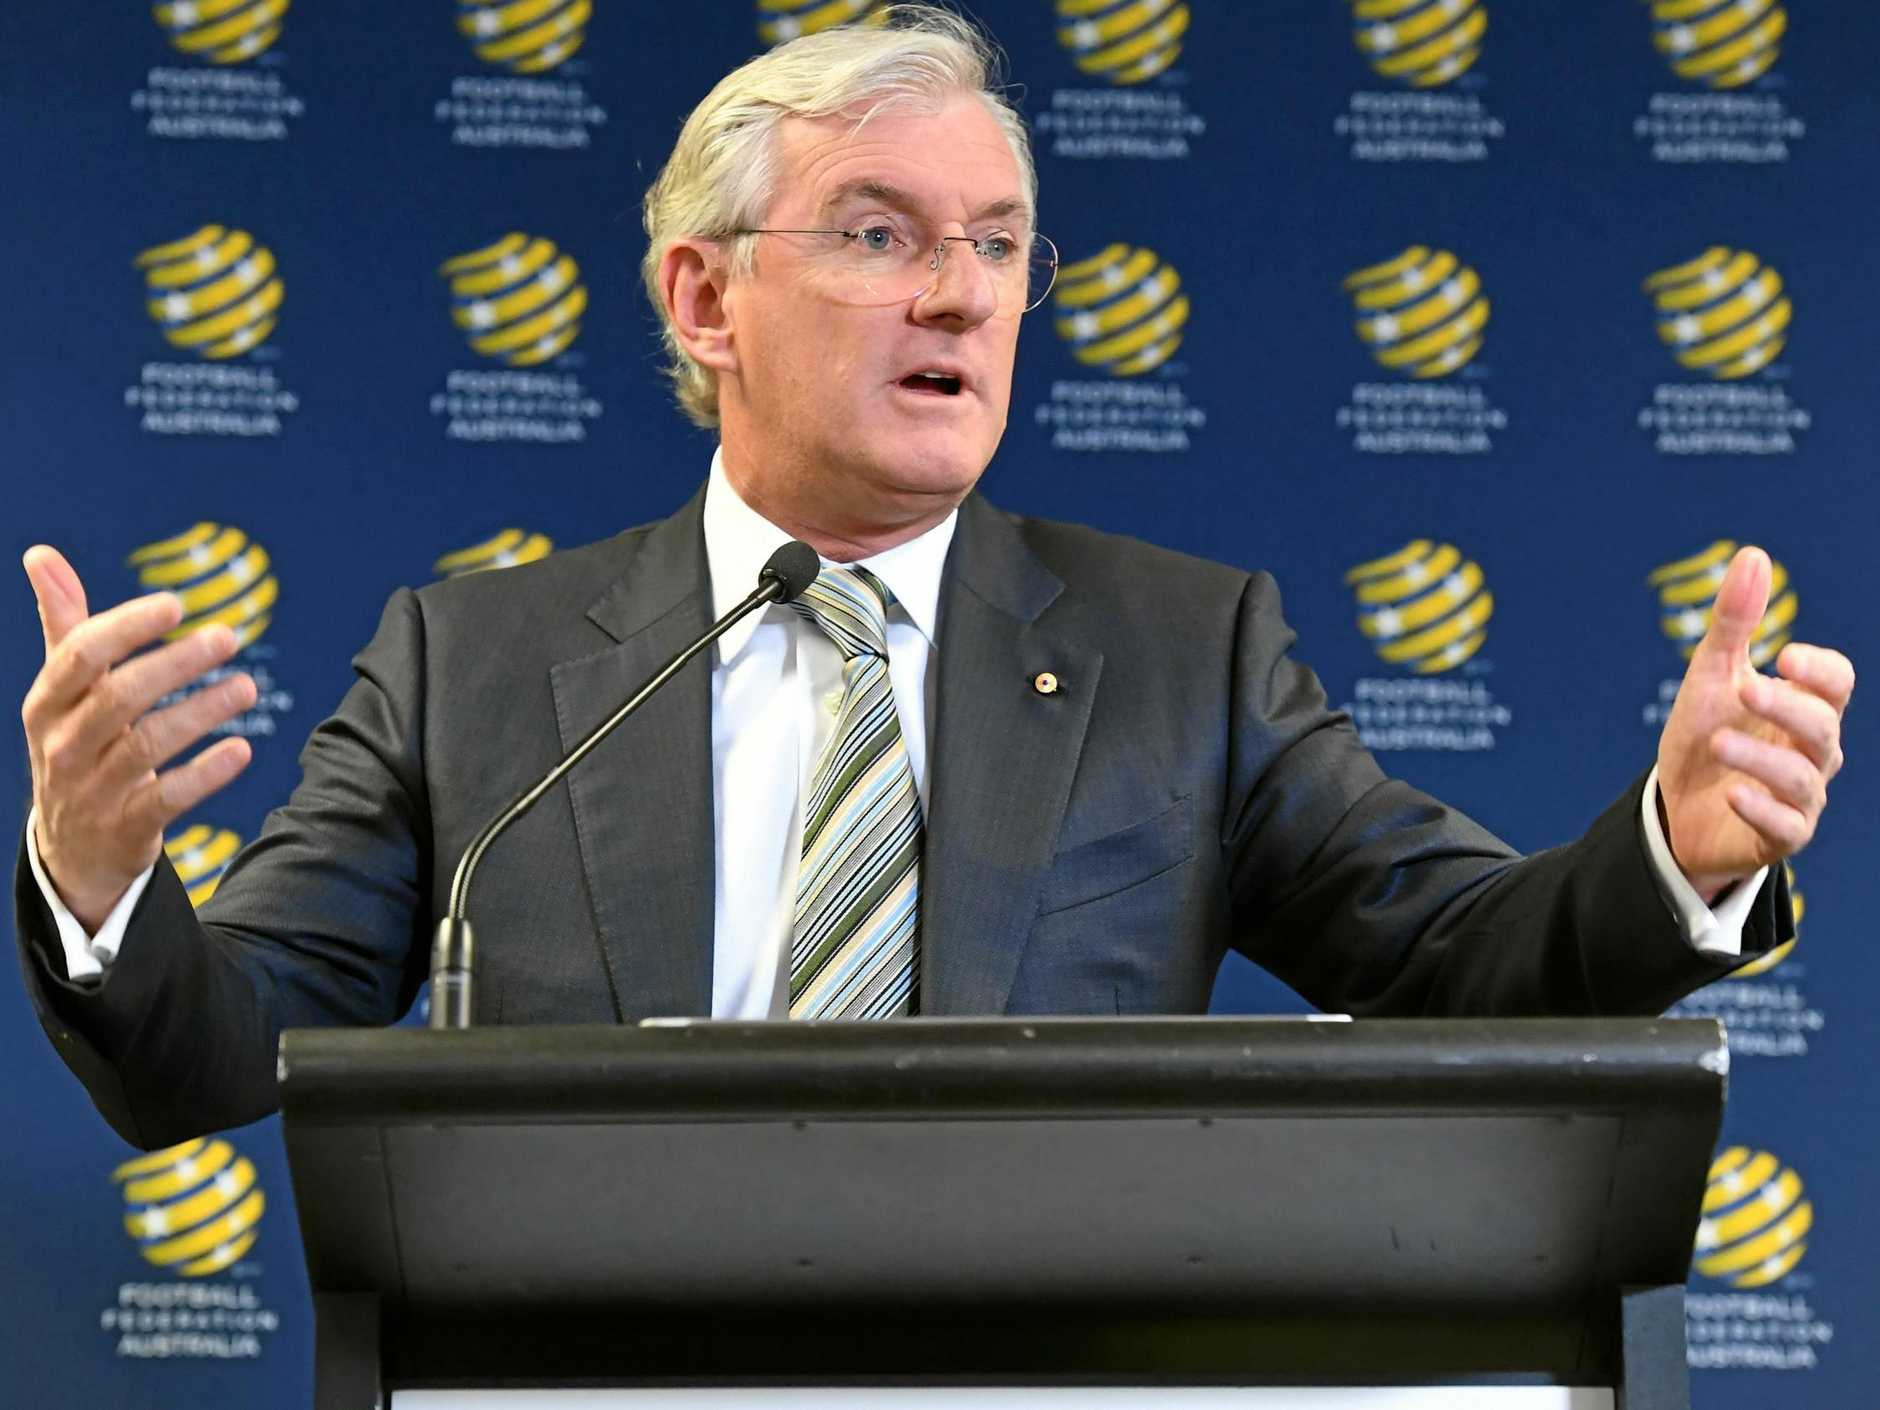 FFA chairman Steven Lowy says he fears for soccer's future in Australia. Picture: Peter Rae/AAP